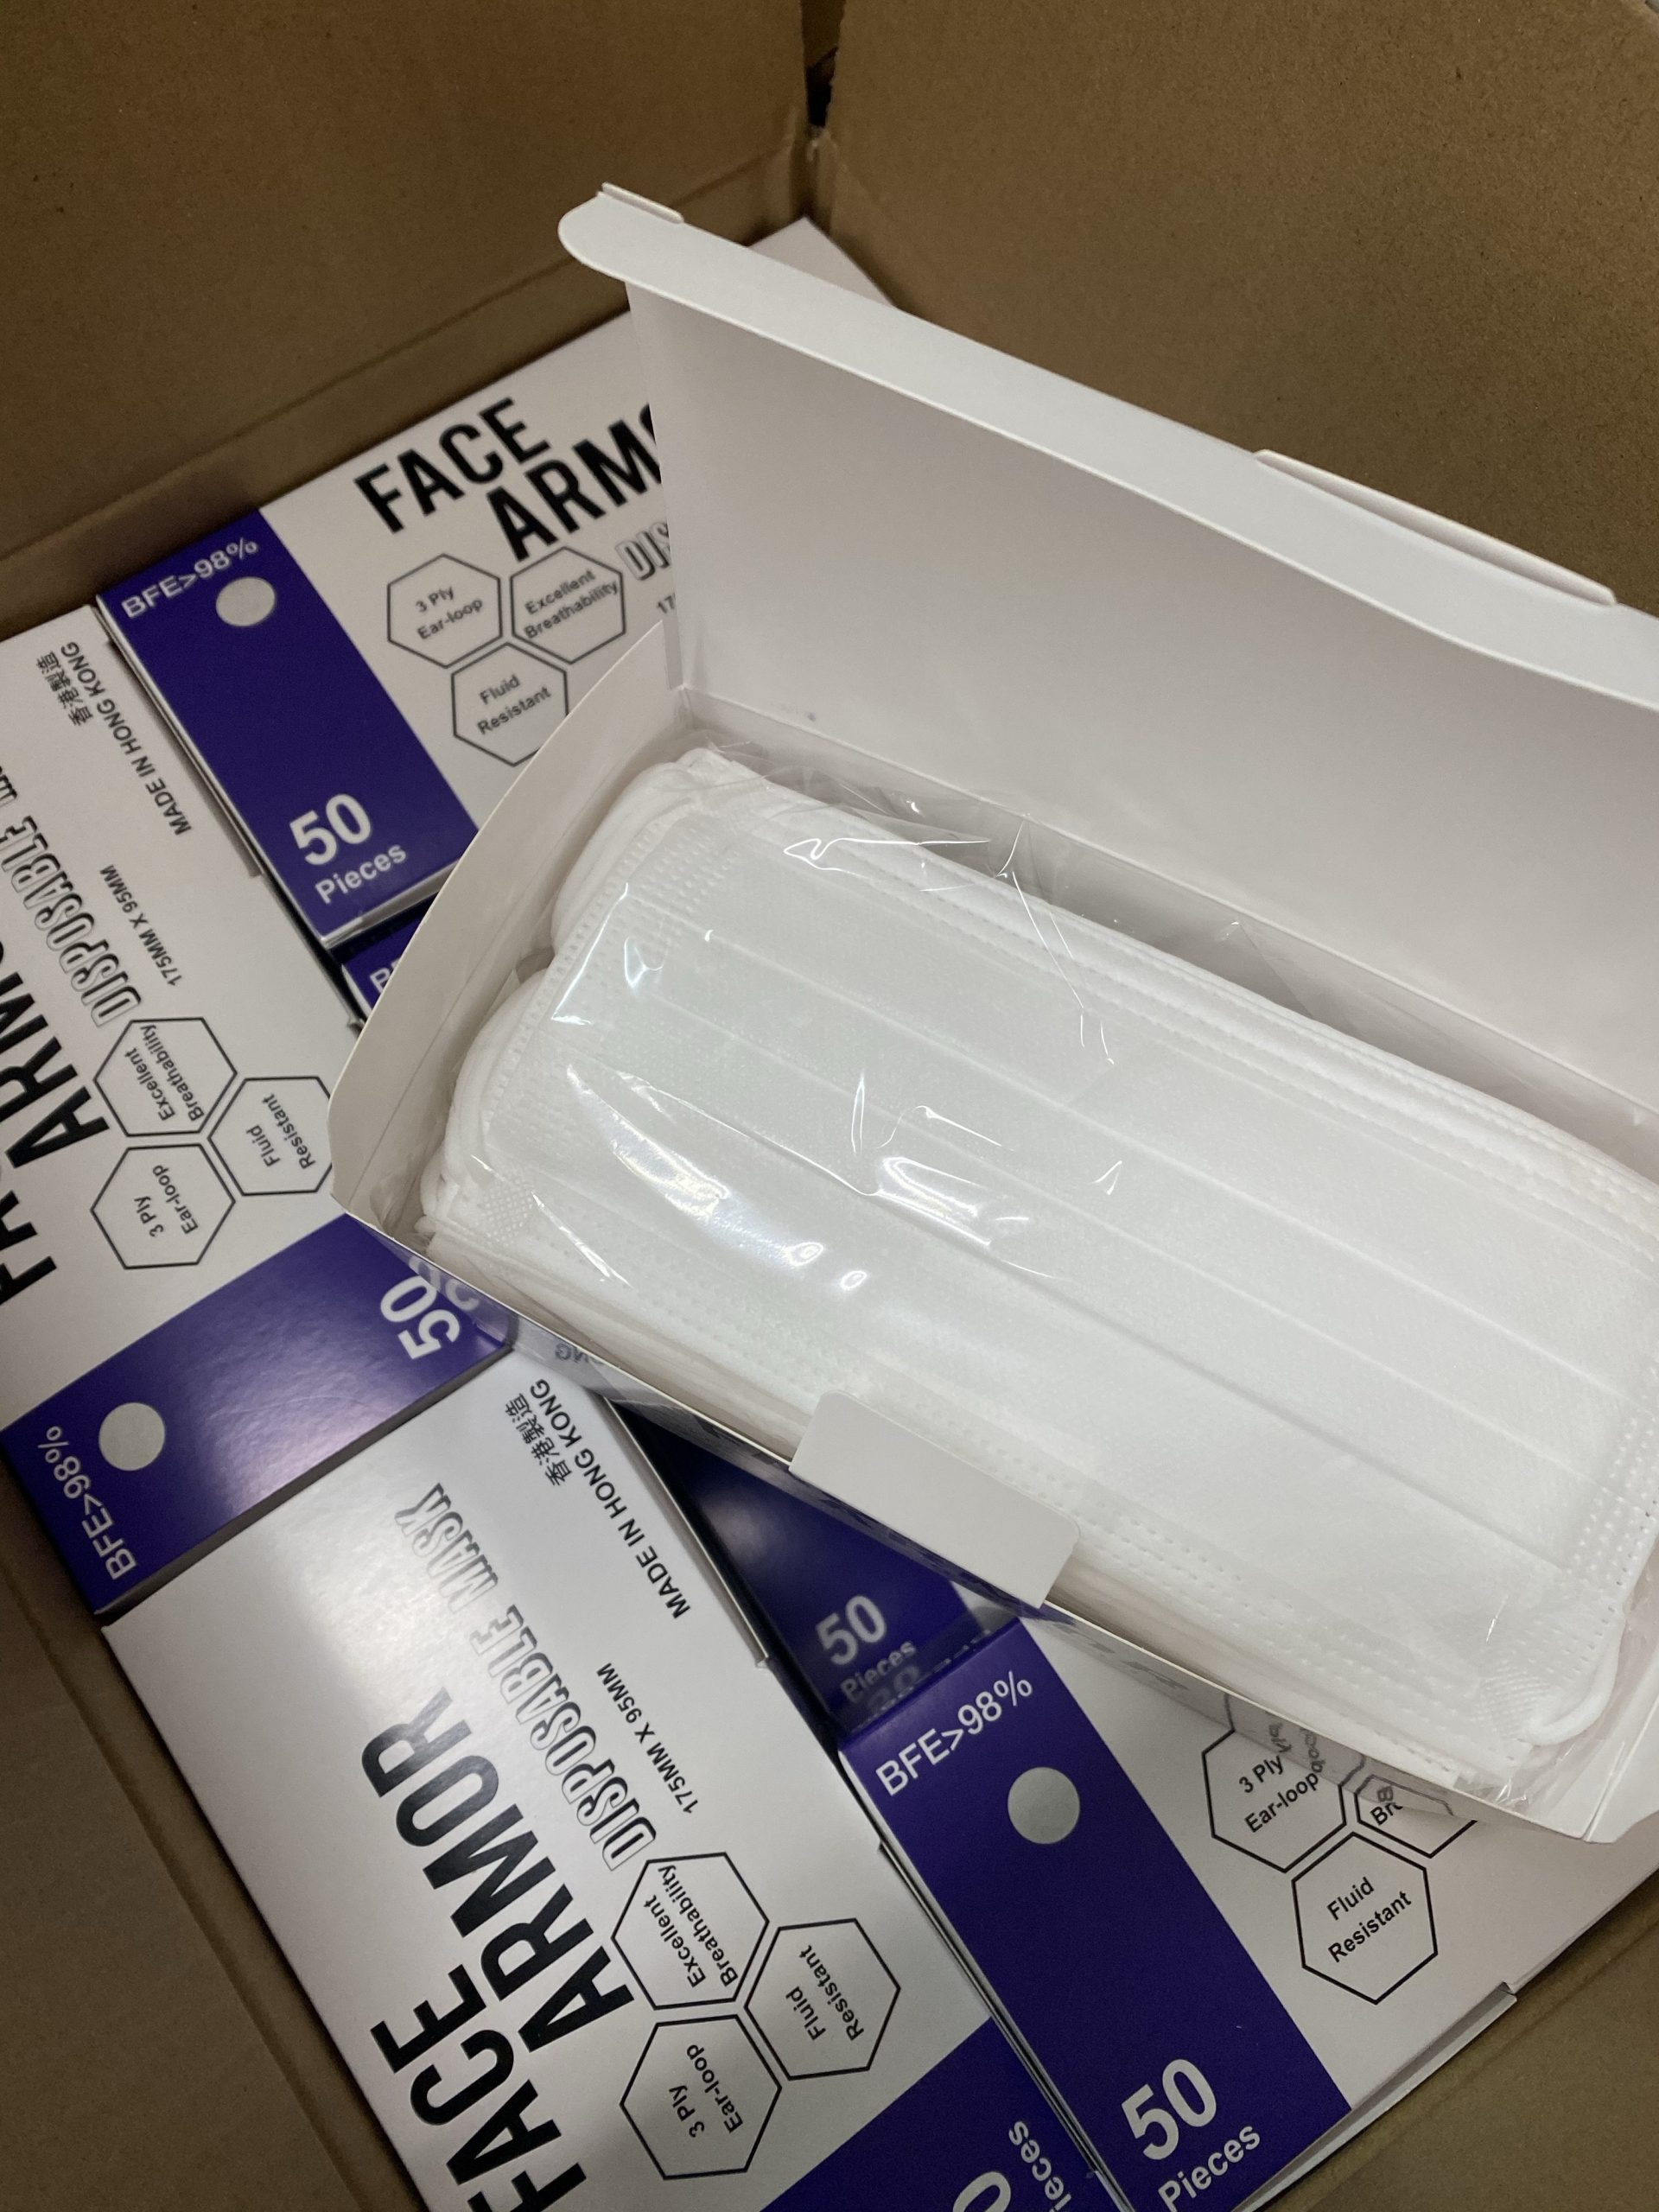 Face Armor Disposable Masks | ASTM LEVEL 3 | Made in Hong Kong| 50 PIECES | WHITE